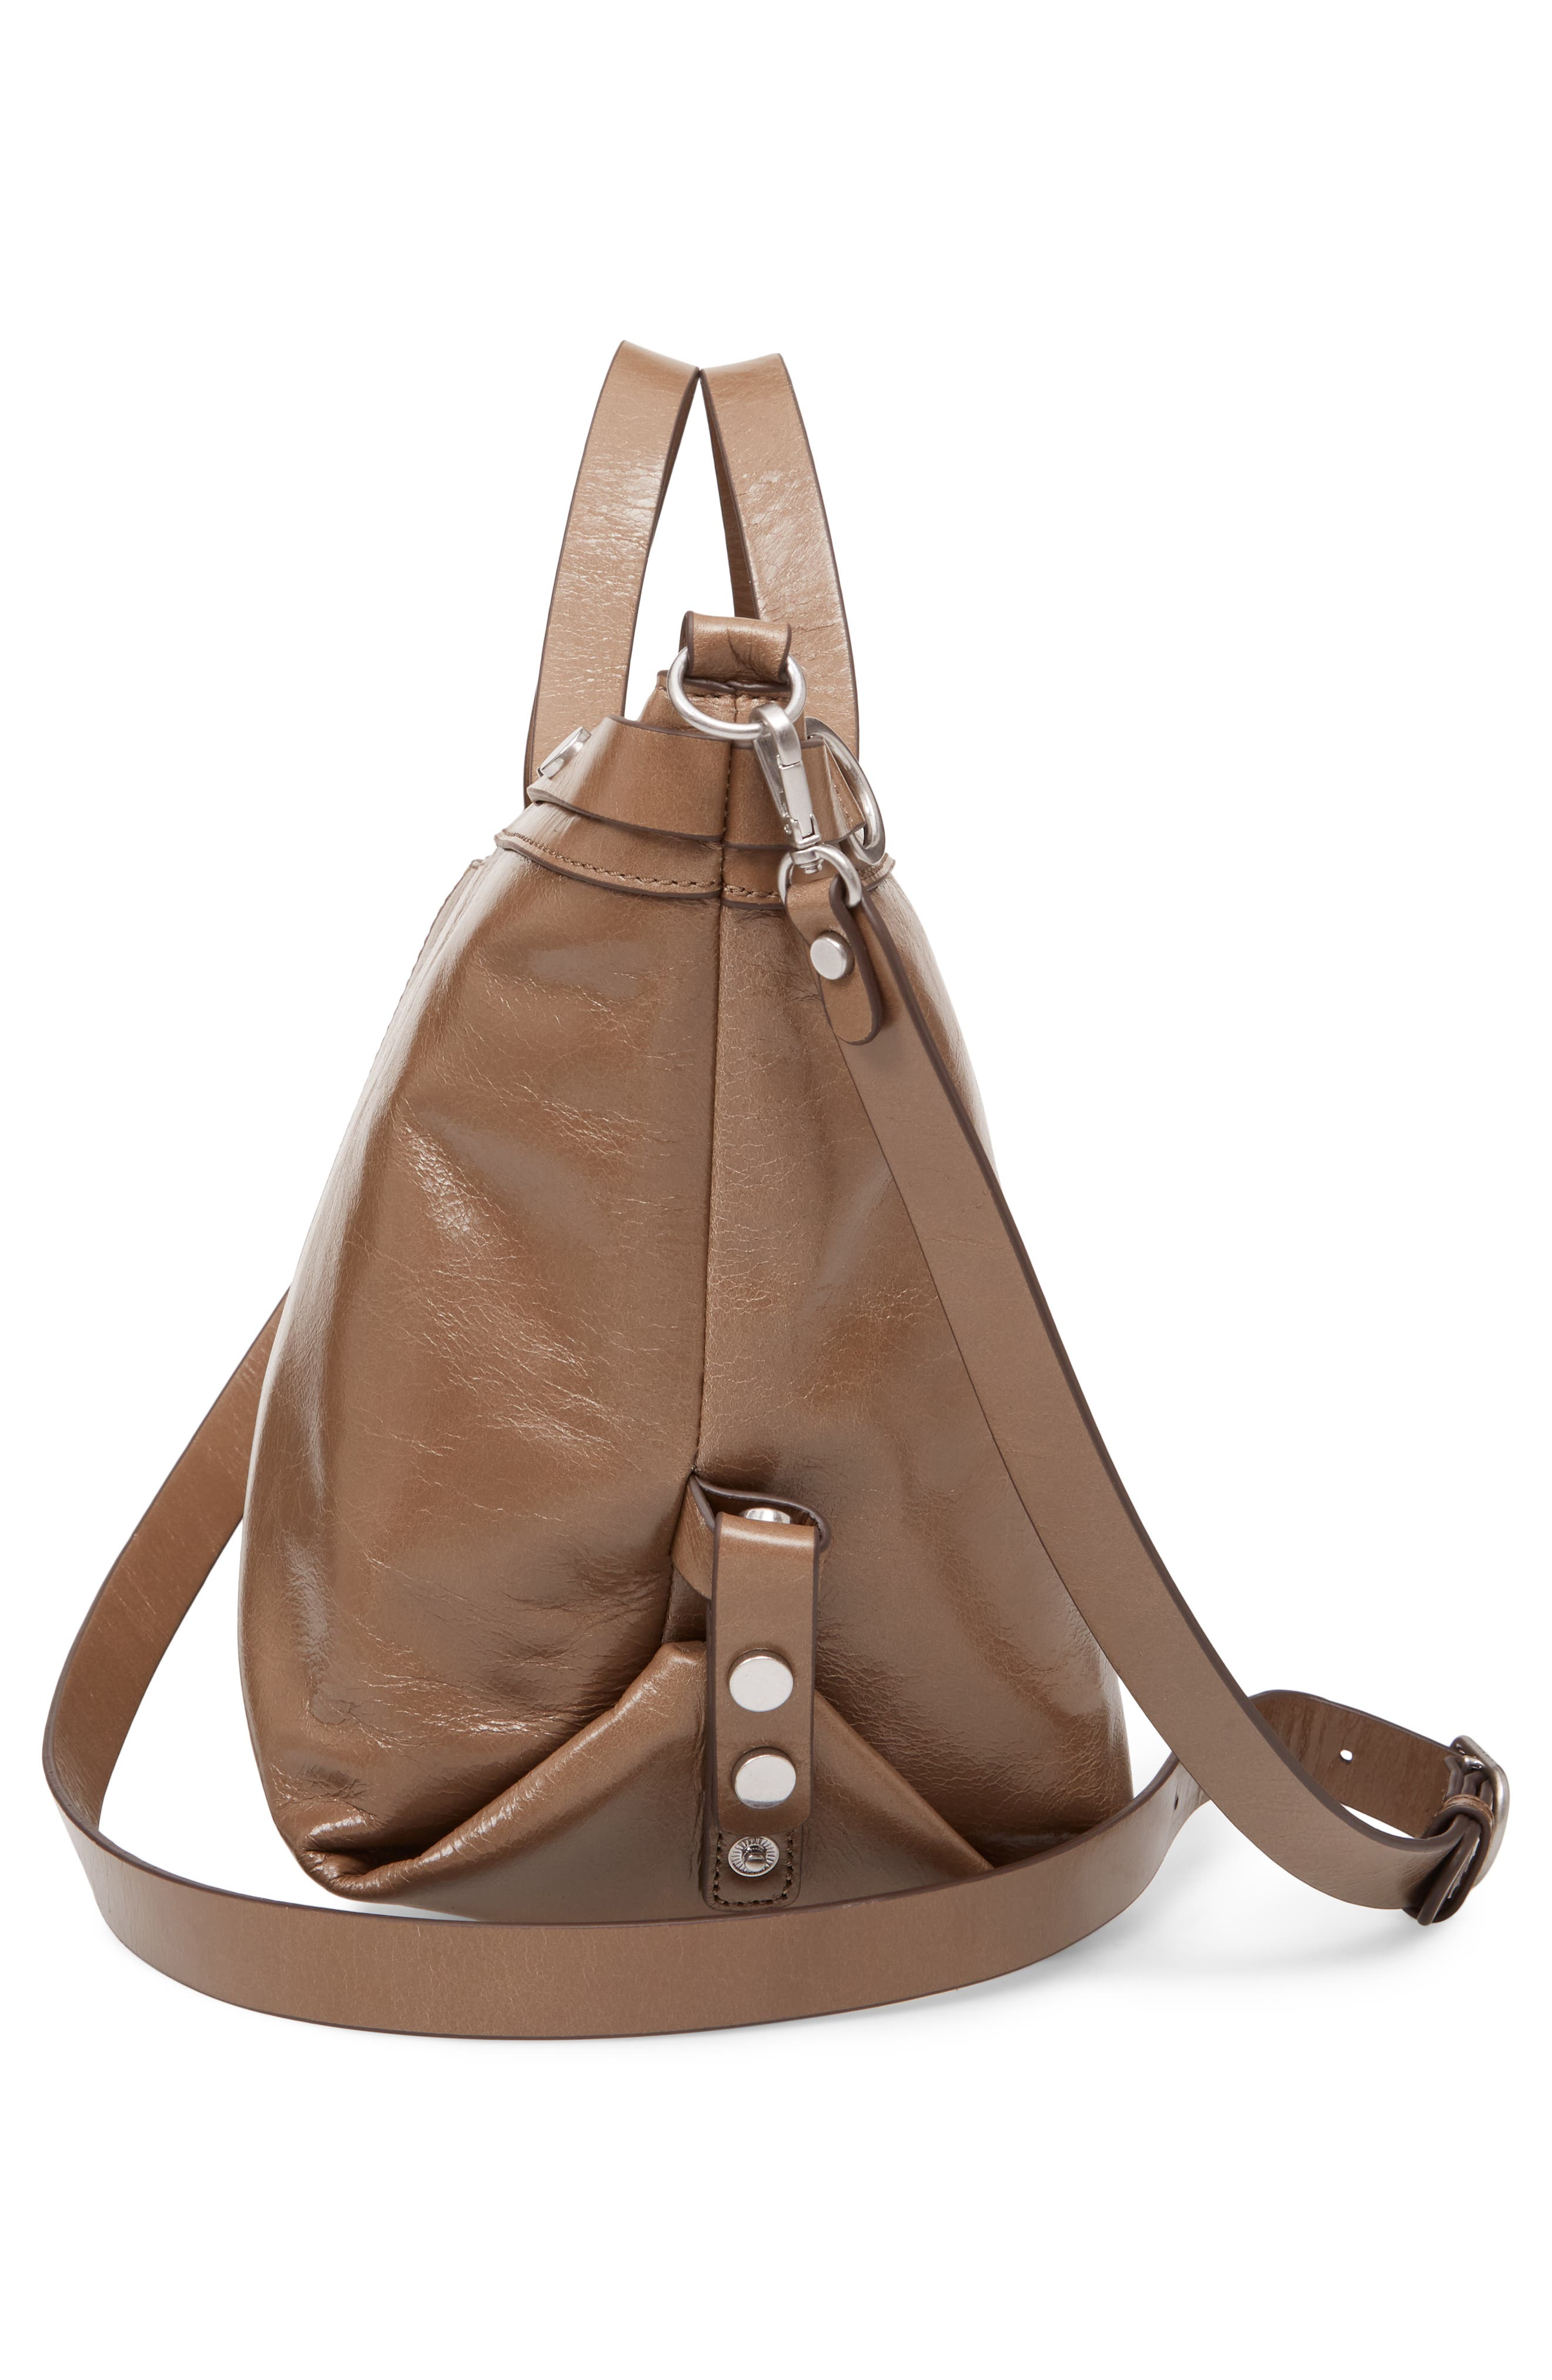 Perry Glazed Leather Convertible Satchel,                             Alternate thumbnail 5, color,                             BEIGE BISCUIT